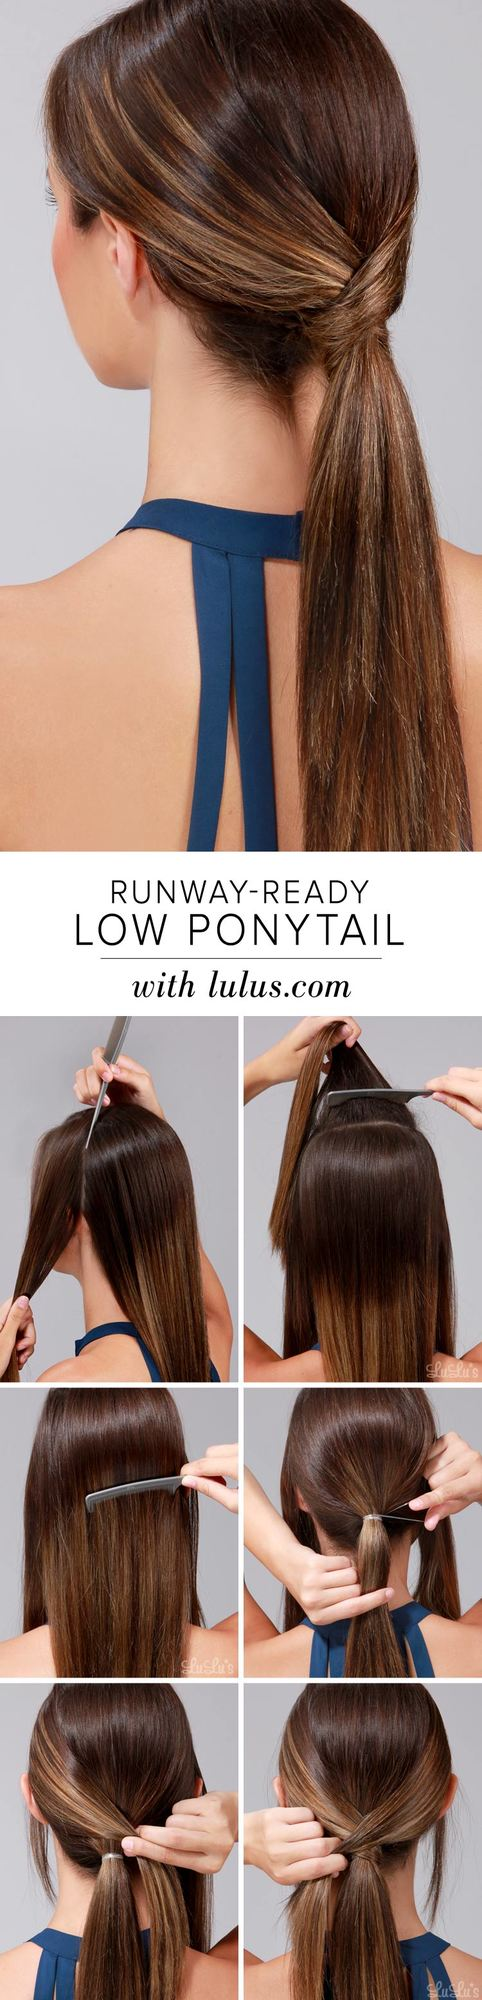 Thumb sleeklowponytail1